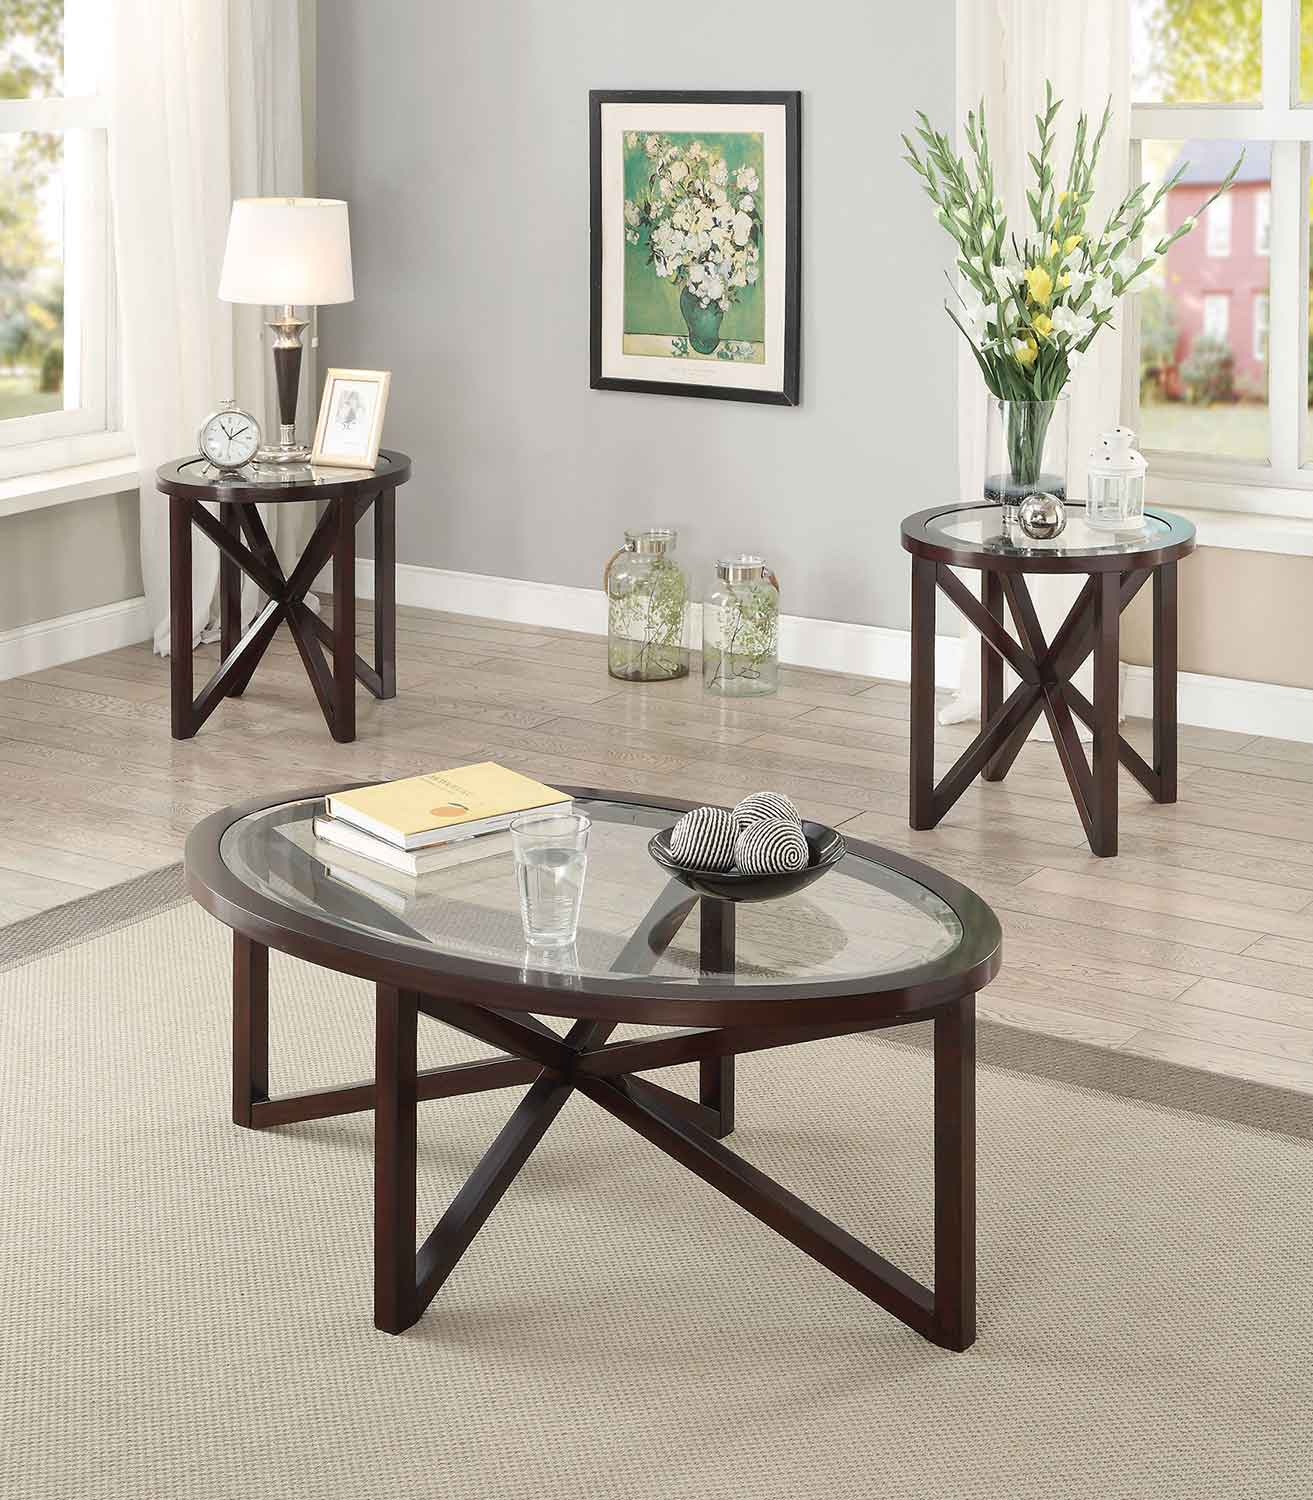 Coaster 701004 Occasional/Coffee Table Set - Cappuccino